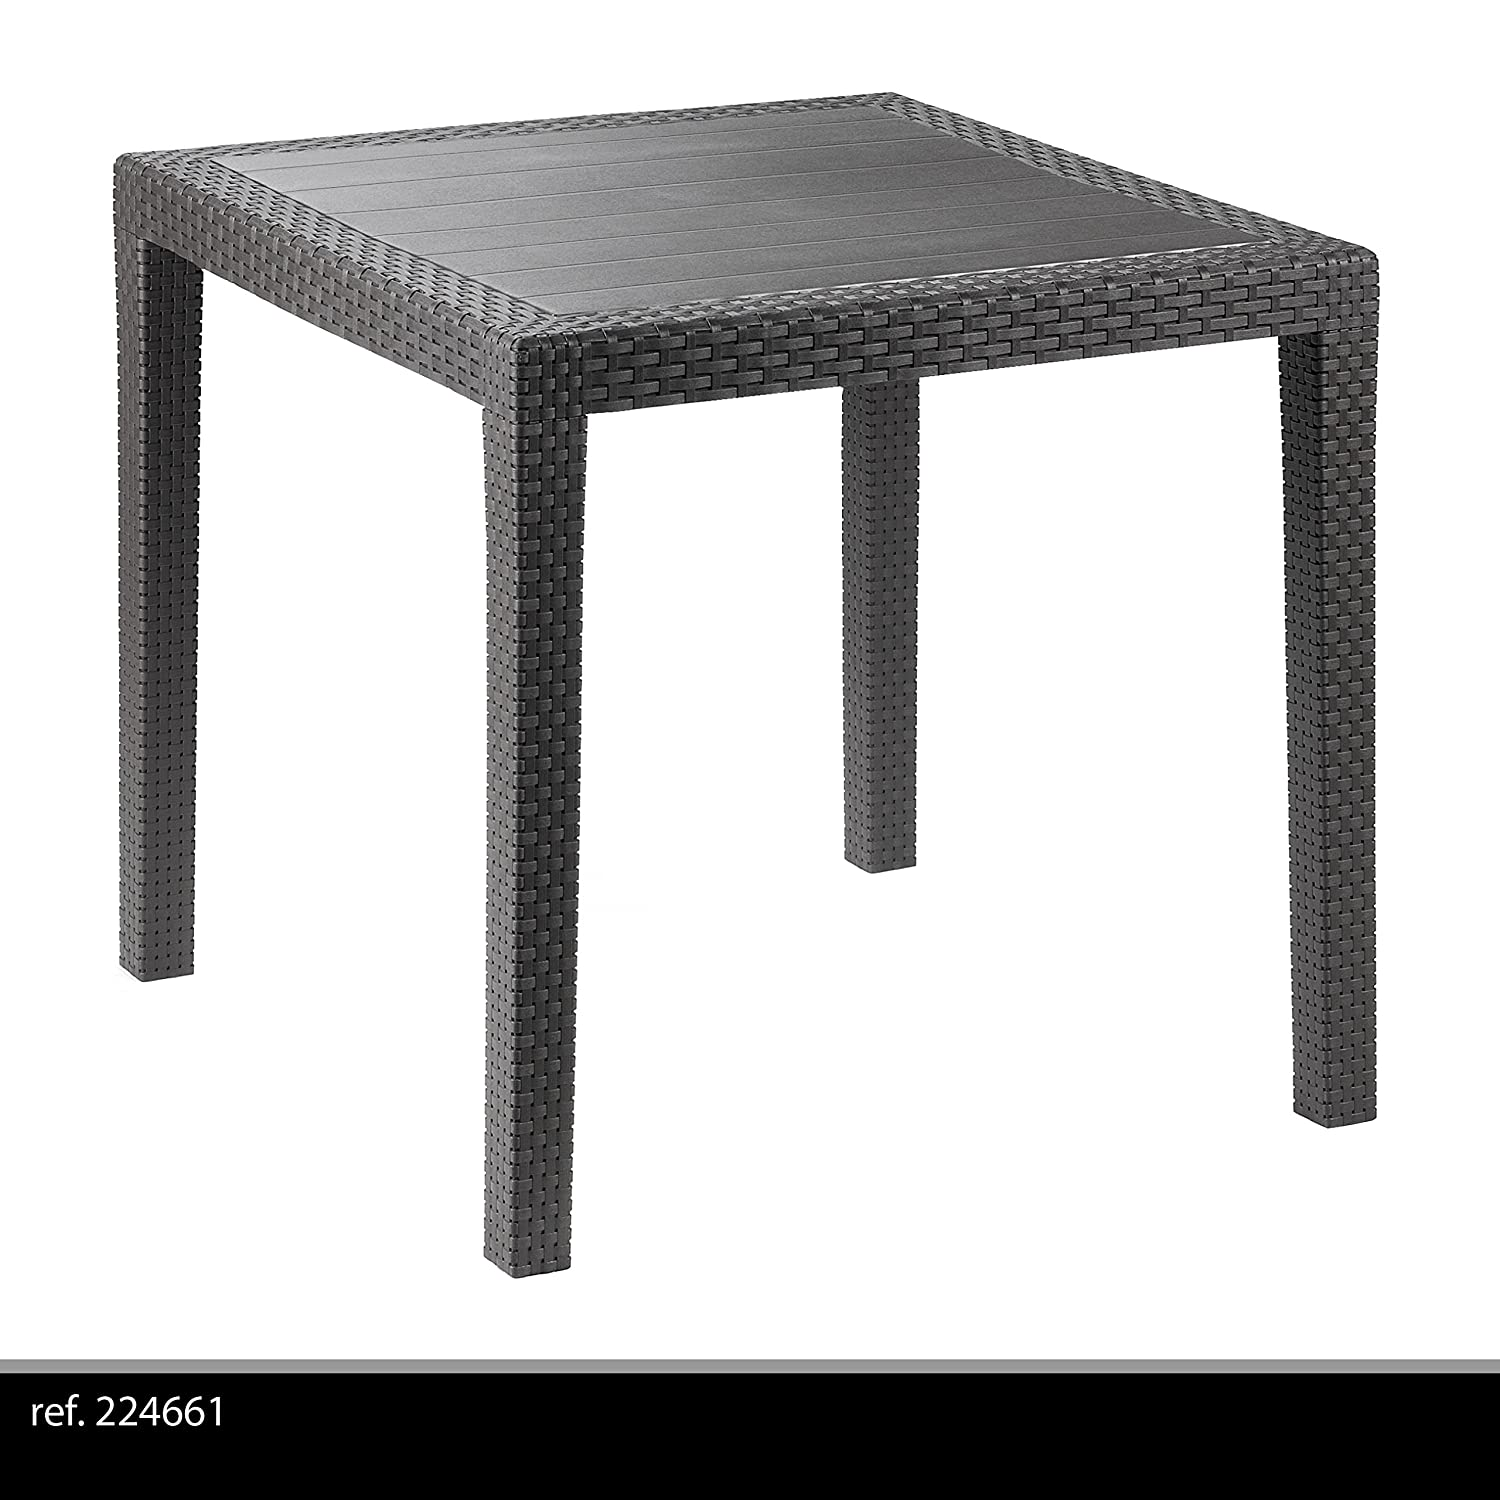 Ipae-Progarden King Rattan Effect Square Table, Anthracite, Plastic, 79 x 79 x 72 cm 8009271052024